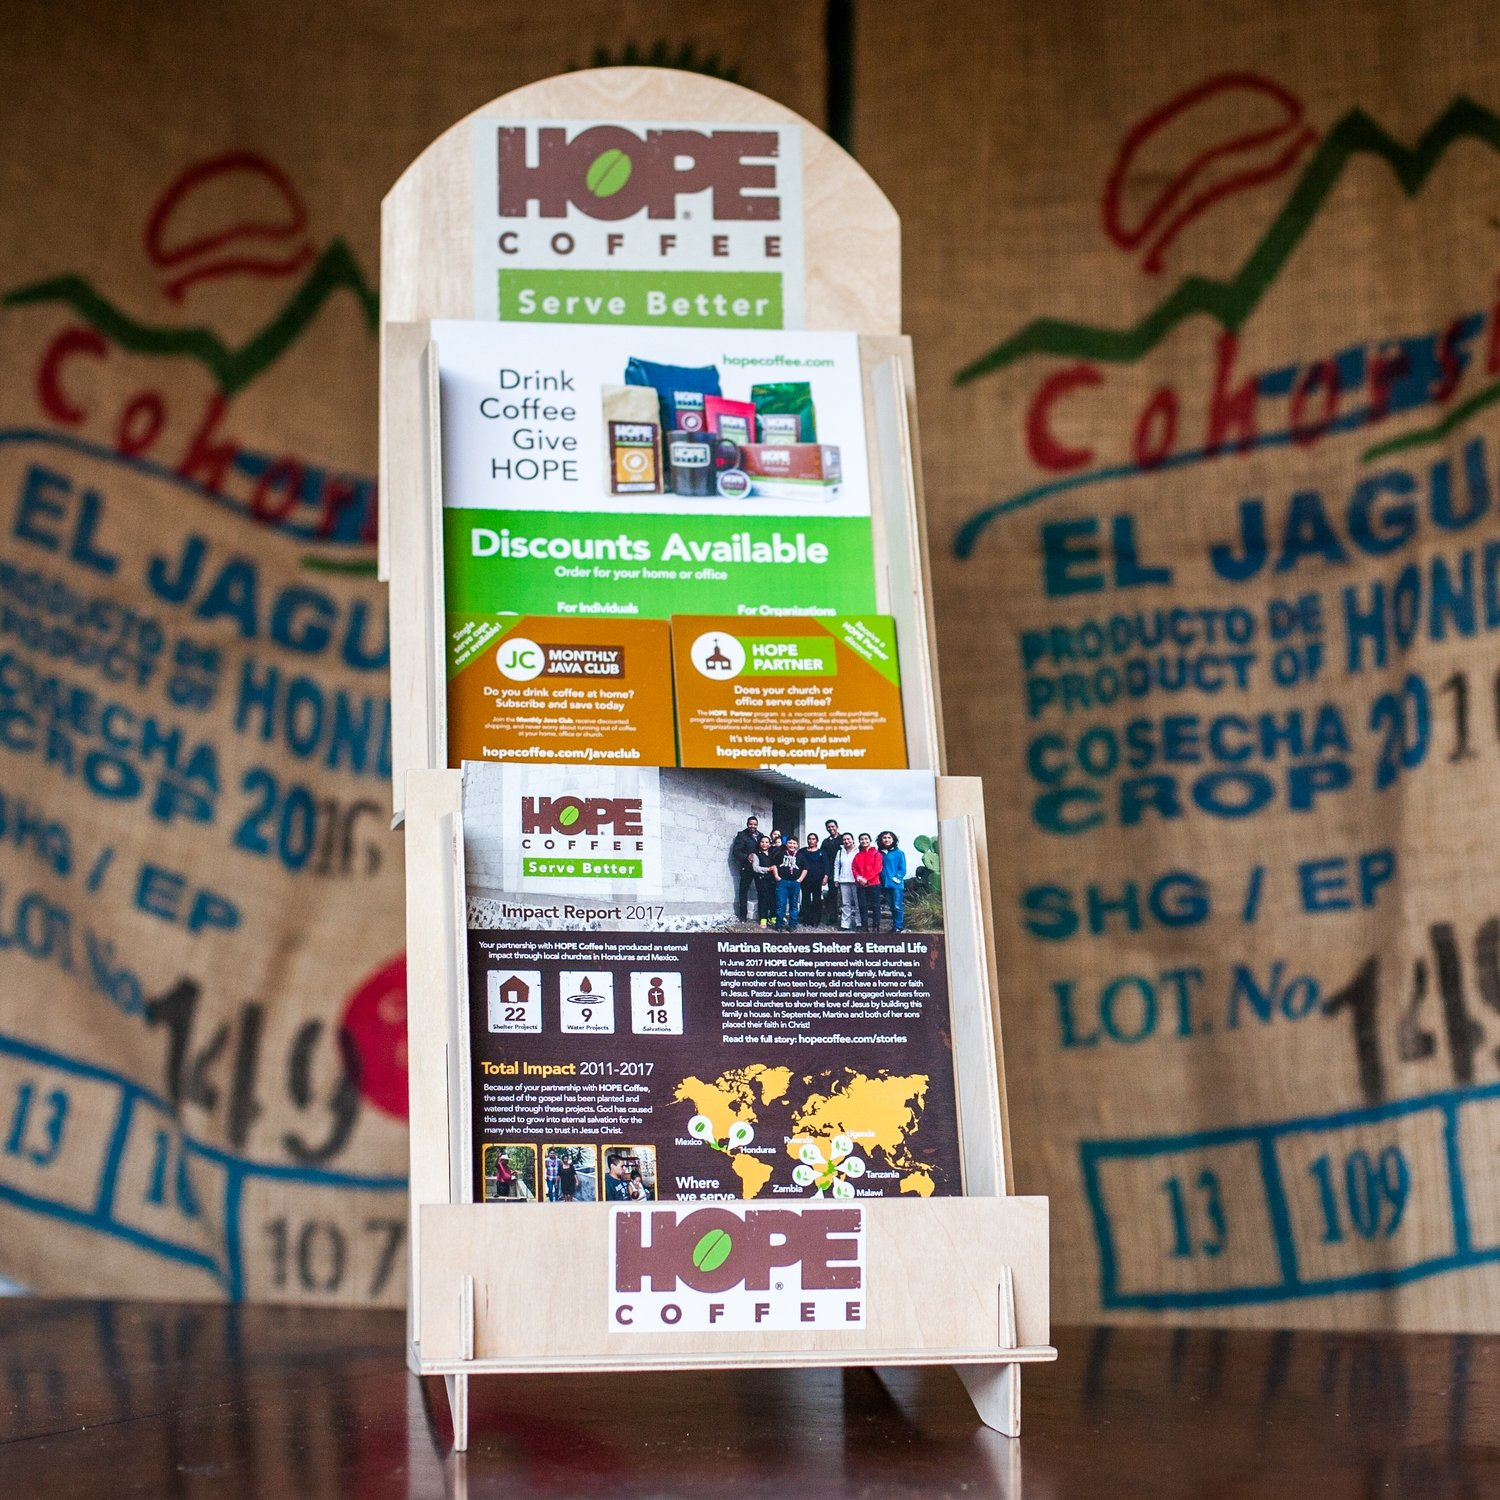 For HOPE Partners: Free HOPE Coffee Display with informational materials